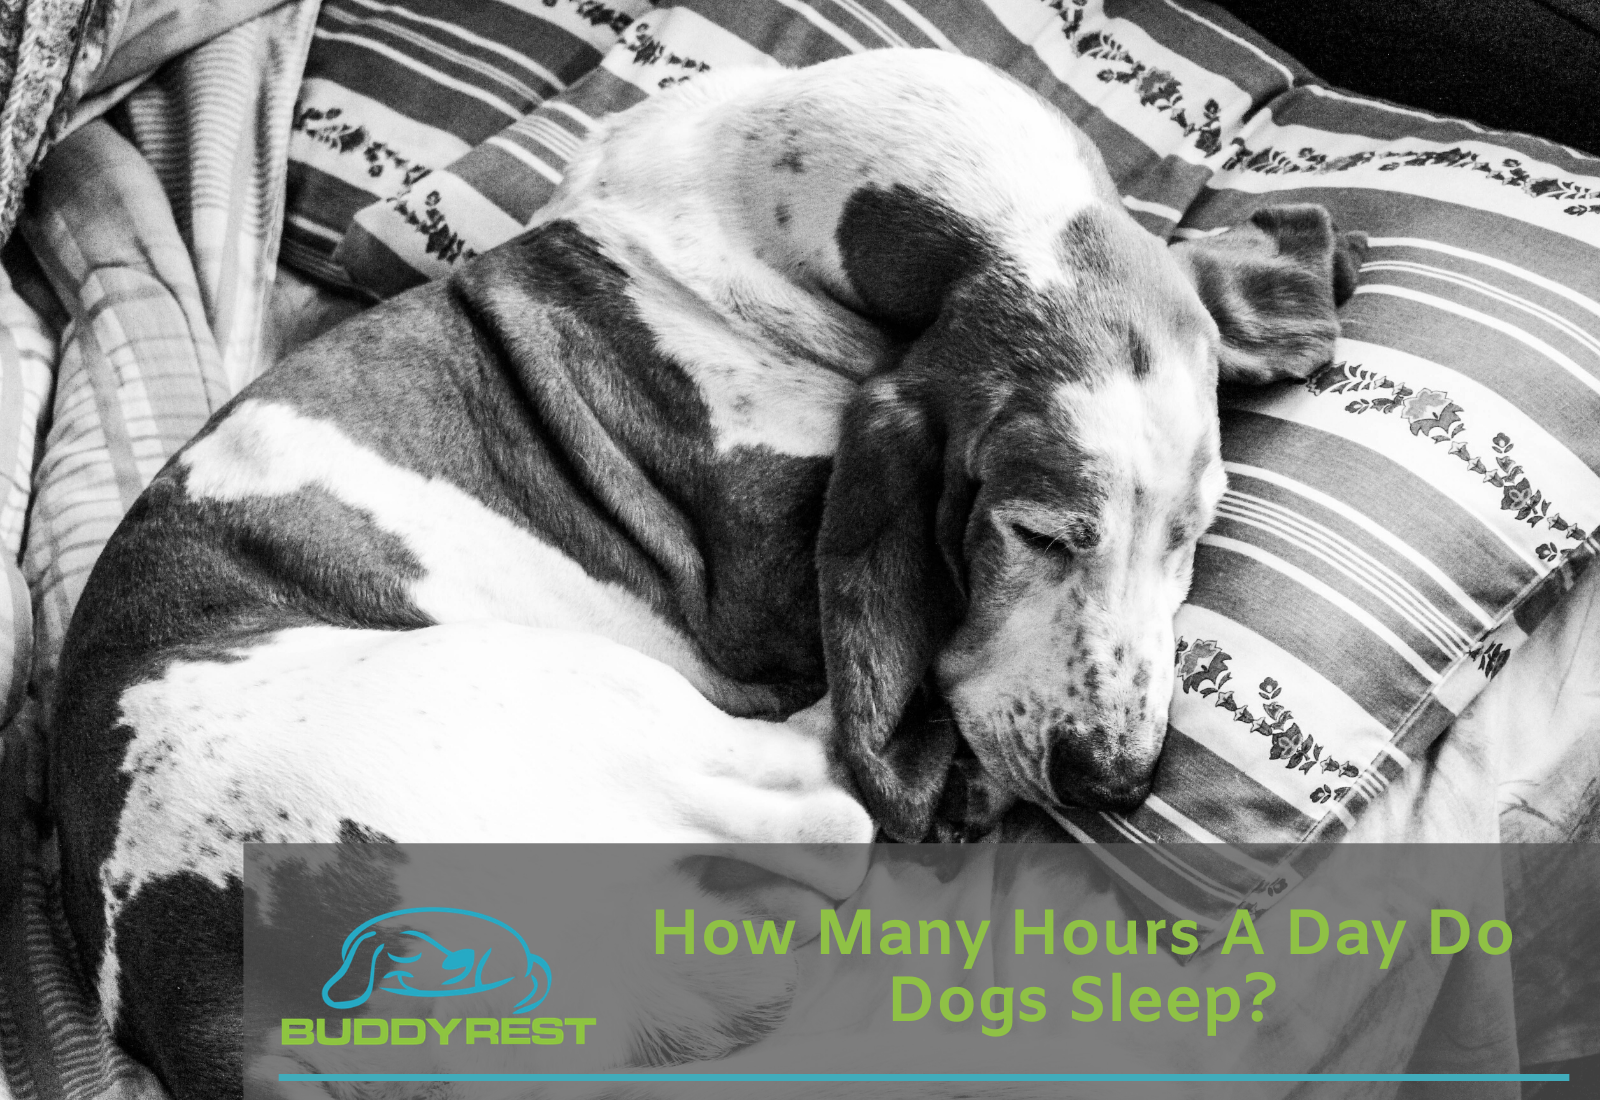 How Many Hours a Day Do Dogs Sleep?